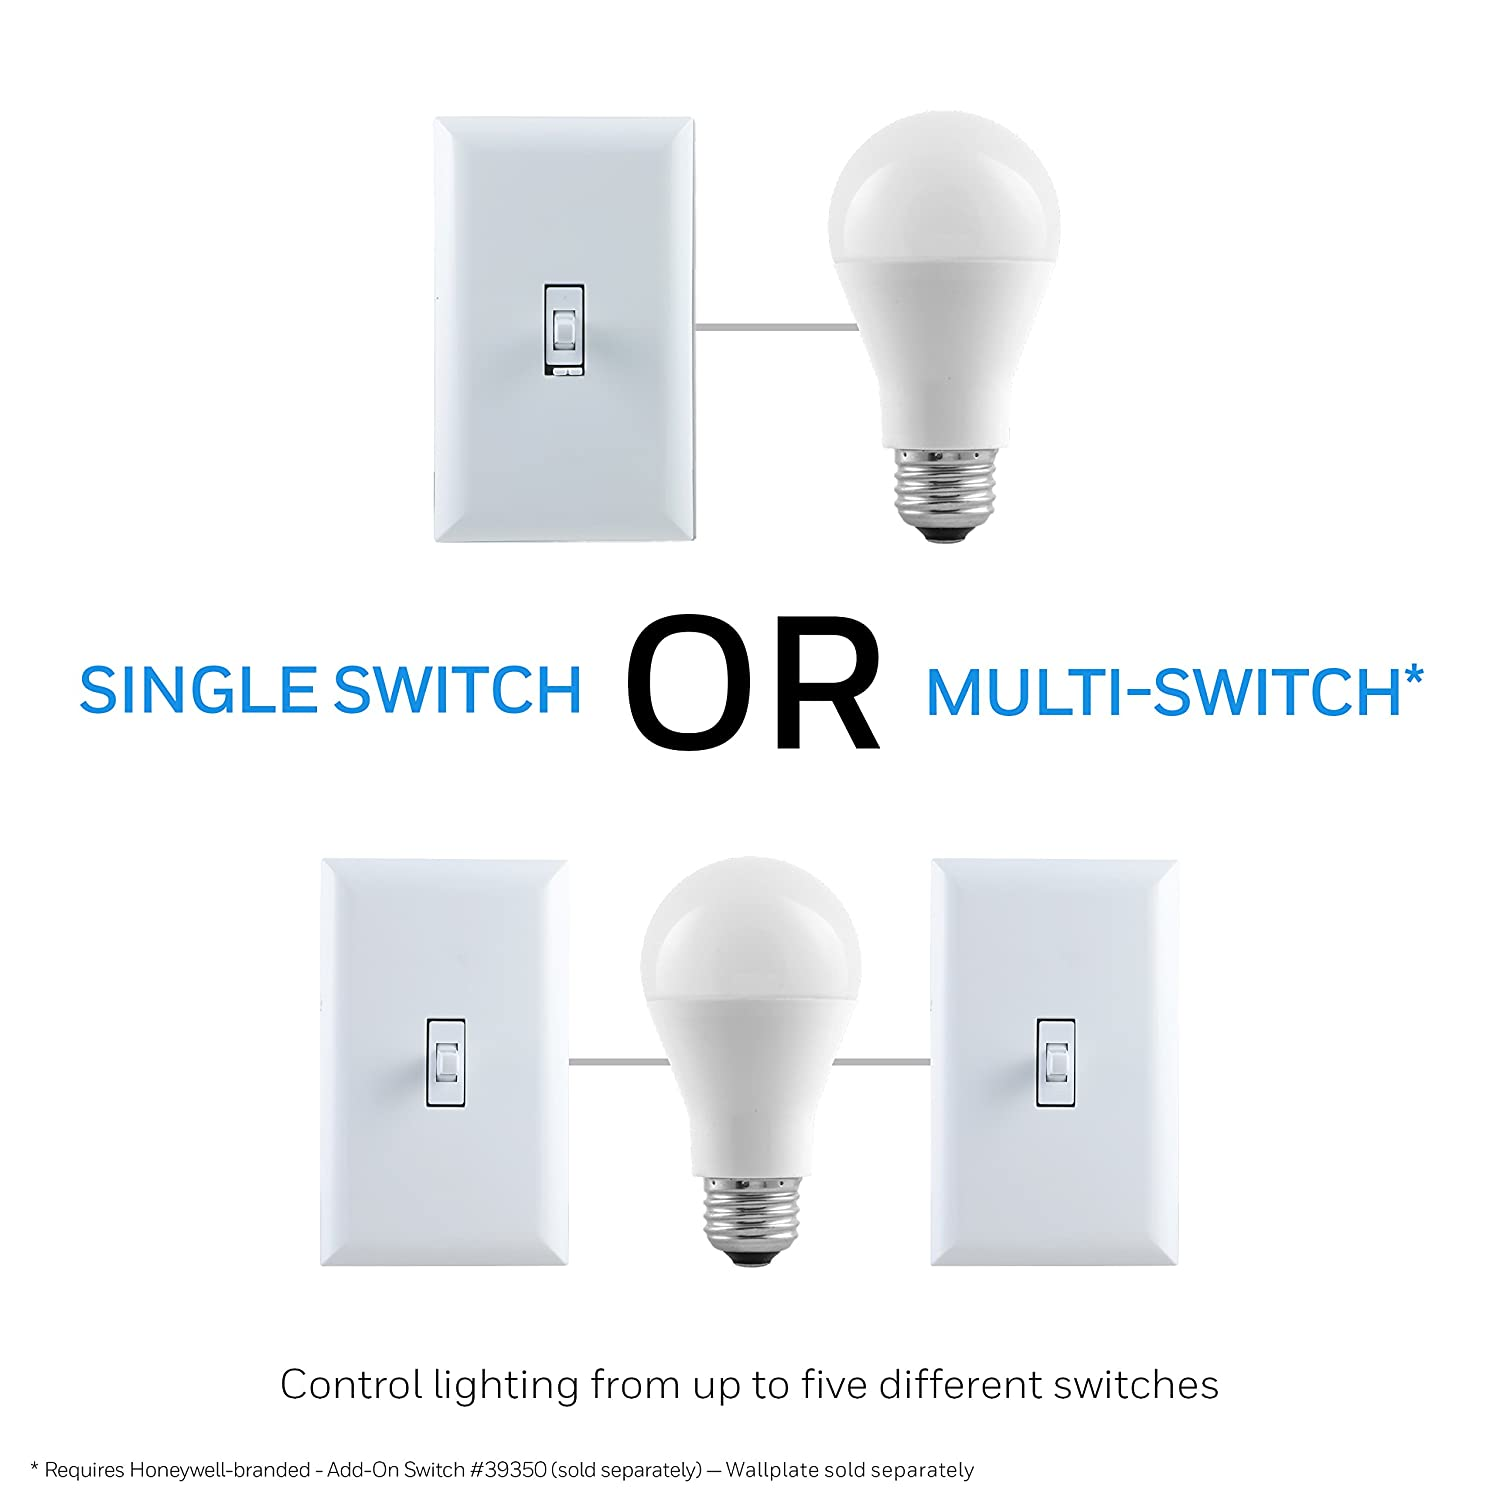 Honeywell Z Wave Plus Smart Light Dimmer Switch In Wall Toggle Lighting Wiring With Neutral Zwave Home Built Repeater Range Extender Requires Wire Hub Required Smartthings